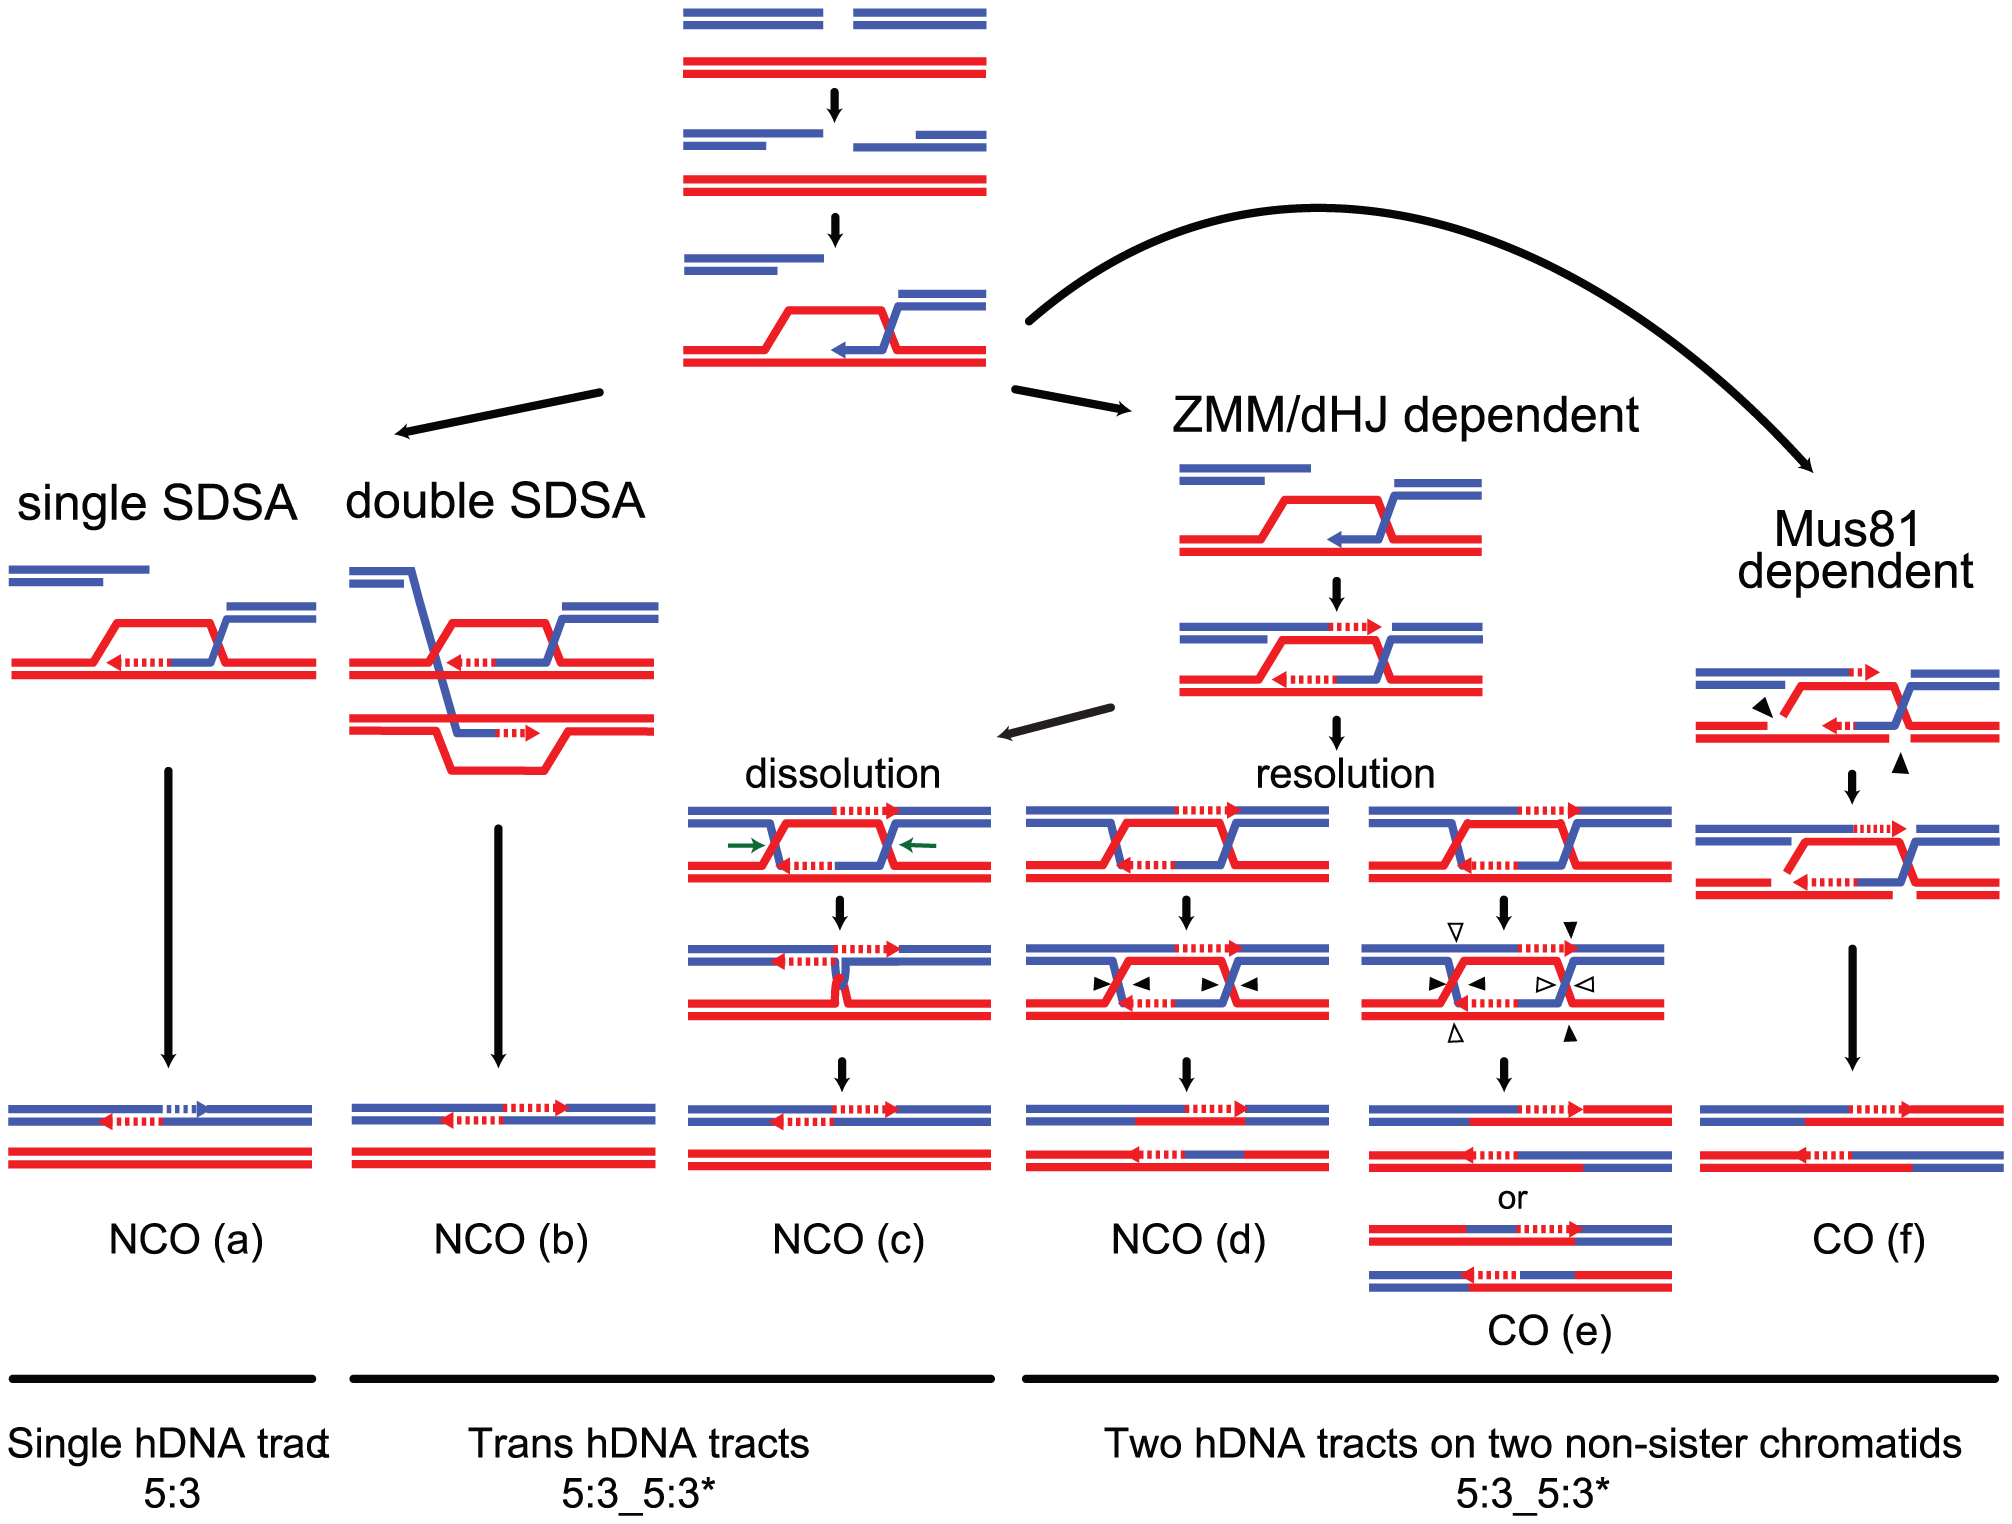 Strand transfers during canonical meiotic DSB repair pathways.